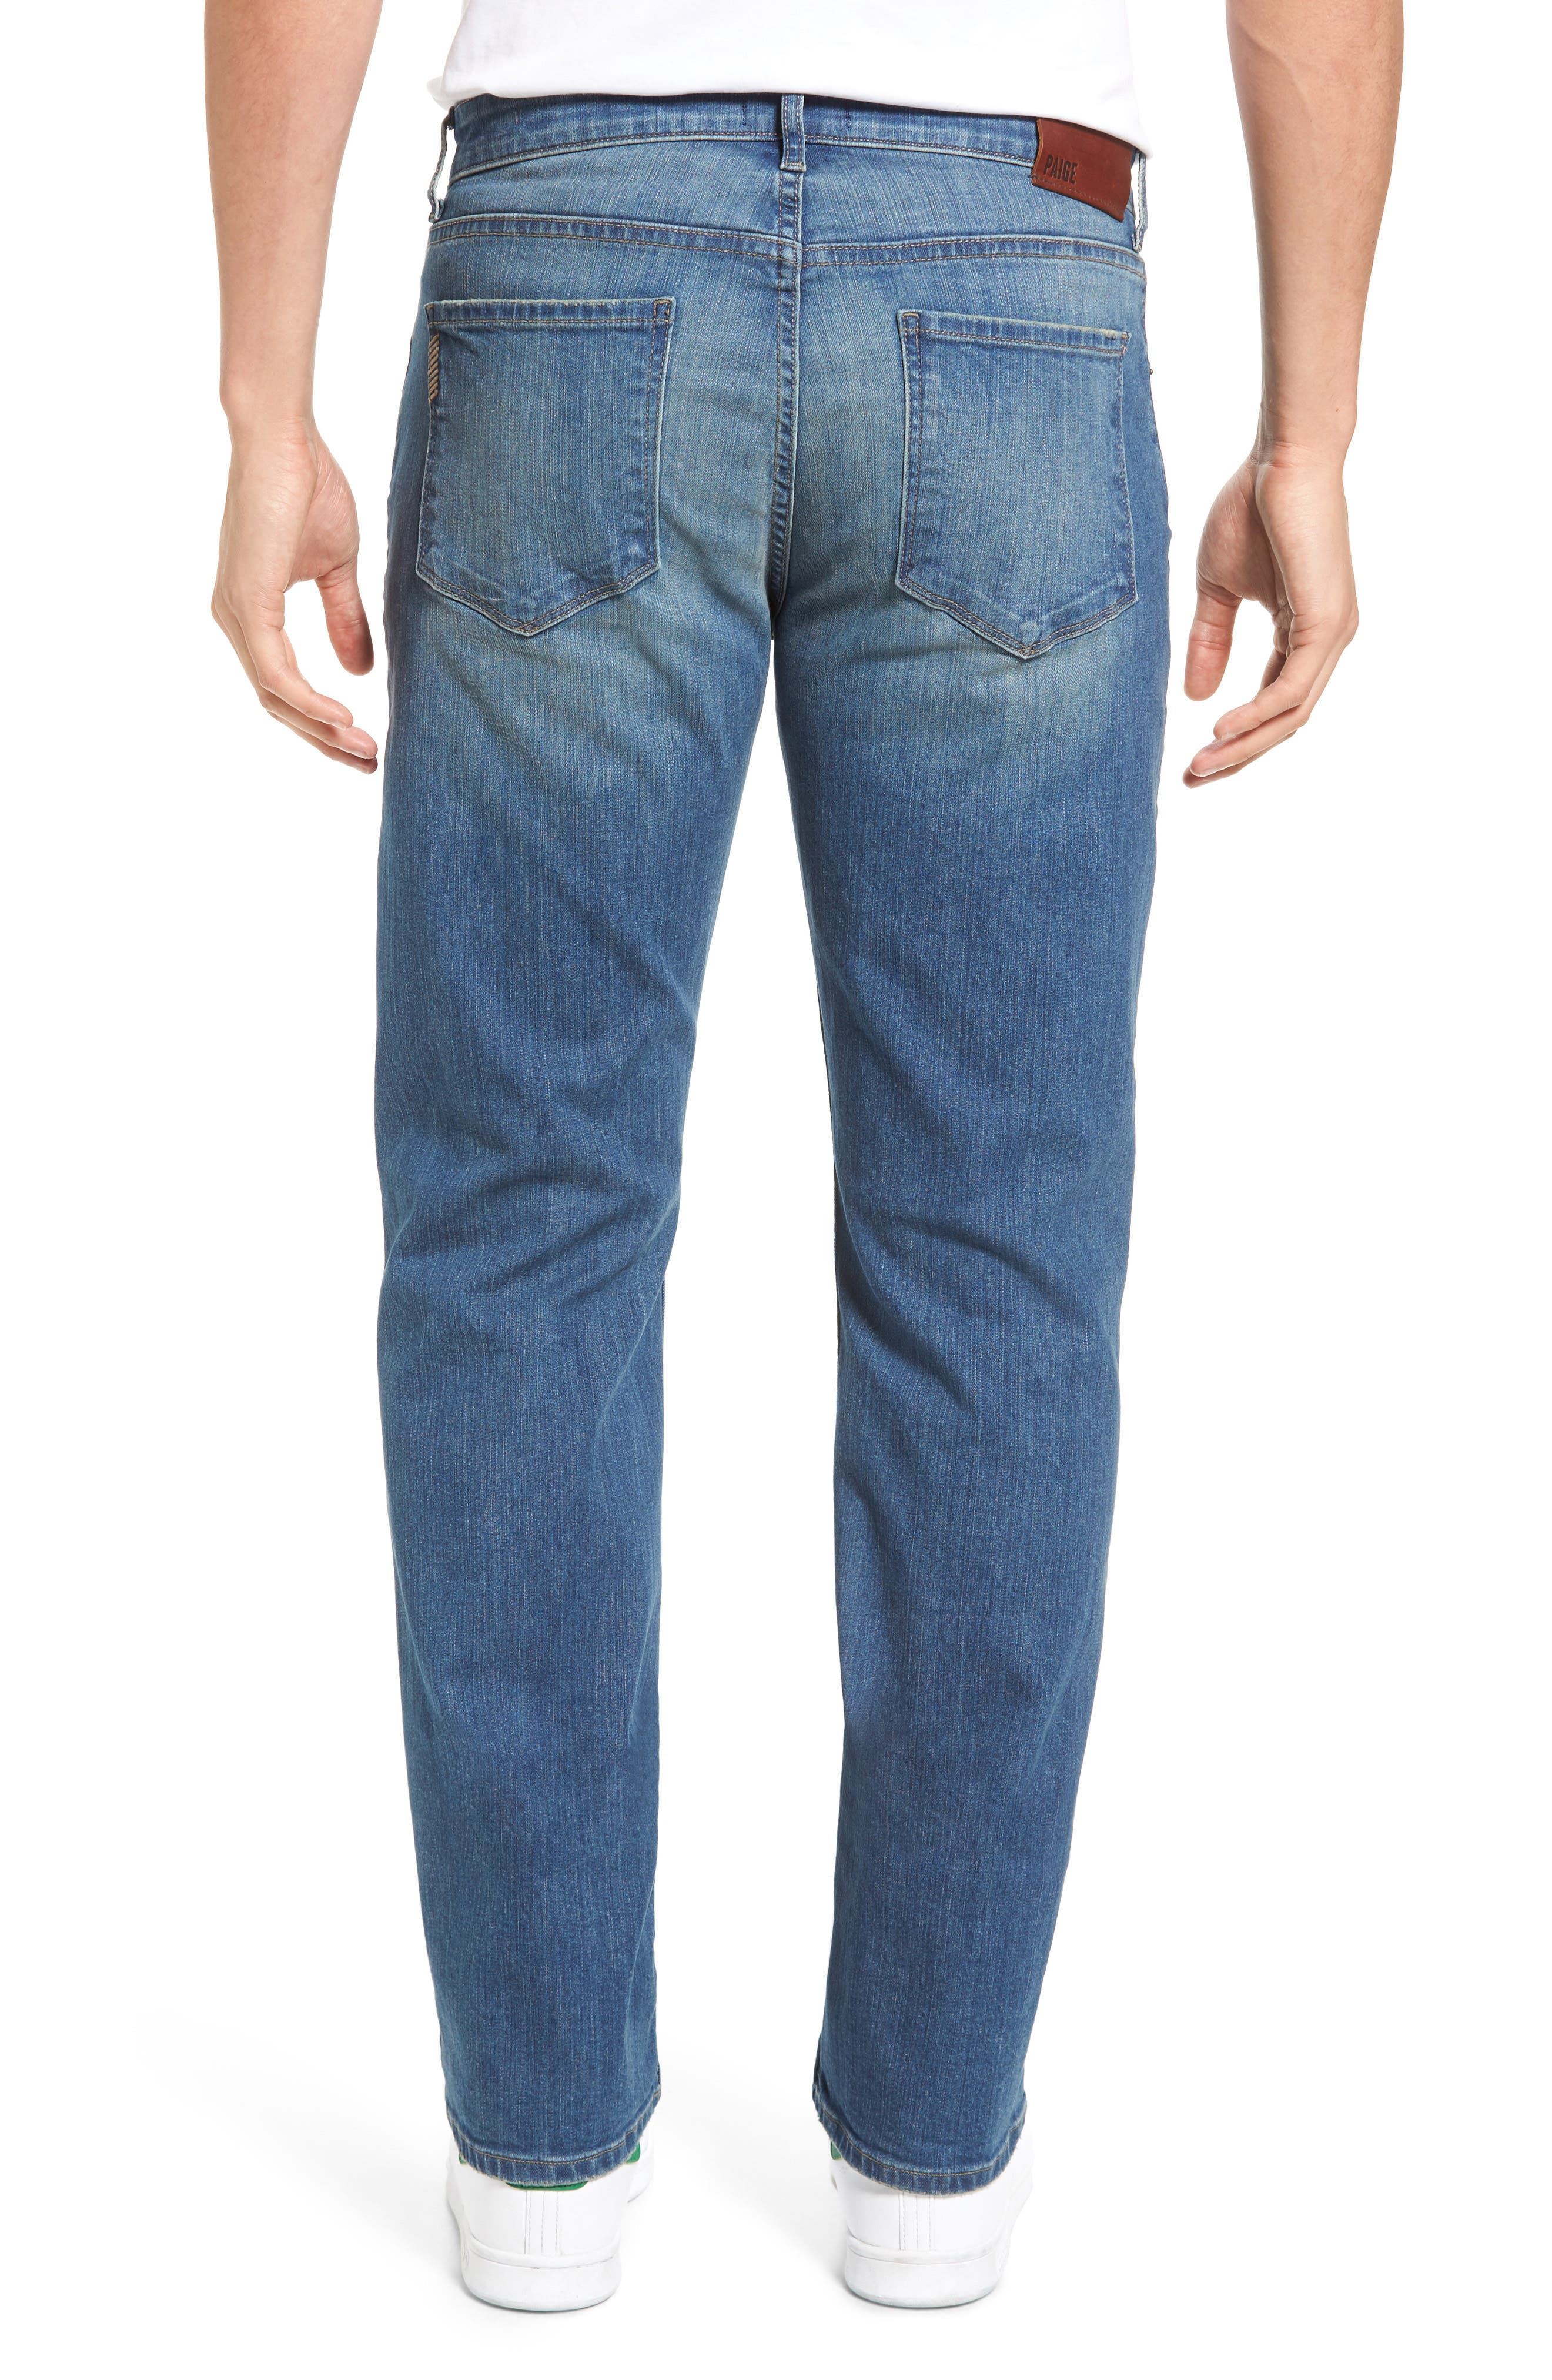 Legacy - Doheny Relaxed Fit Jeans,                             Alternate thumbnail 2, color,                             Cash